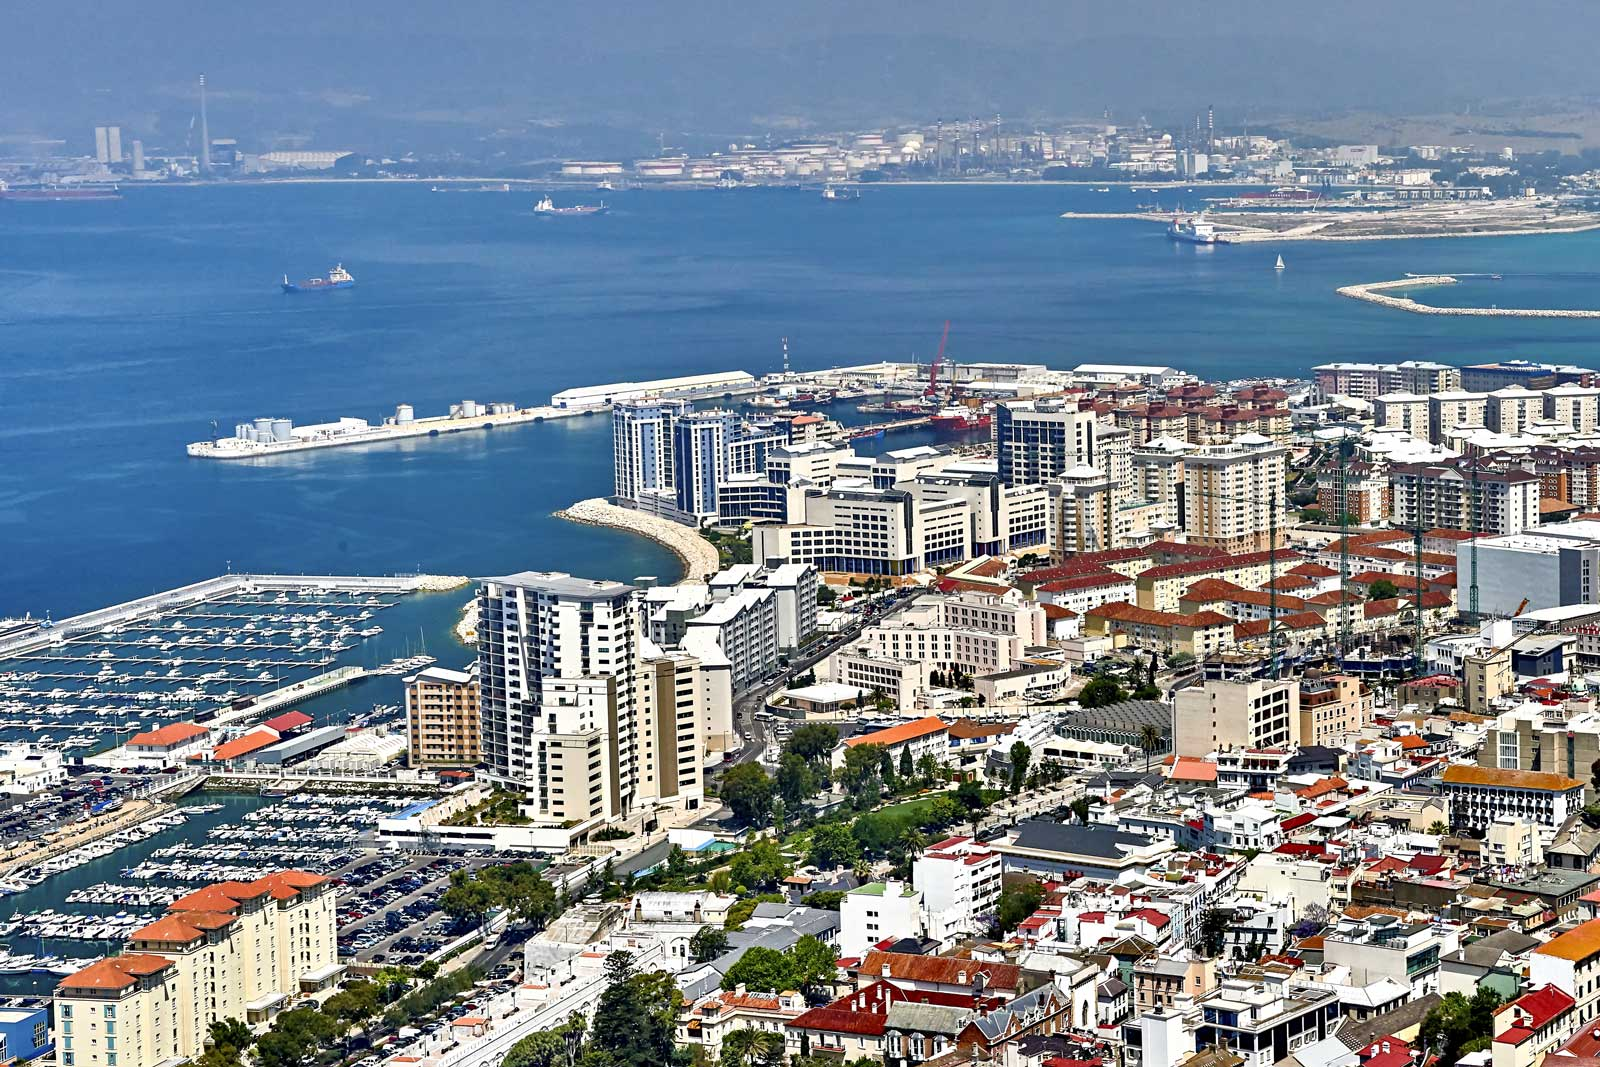 Aerial View of Gibraltar Image